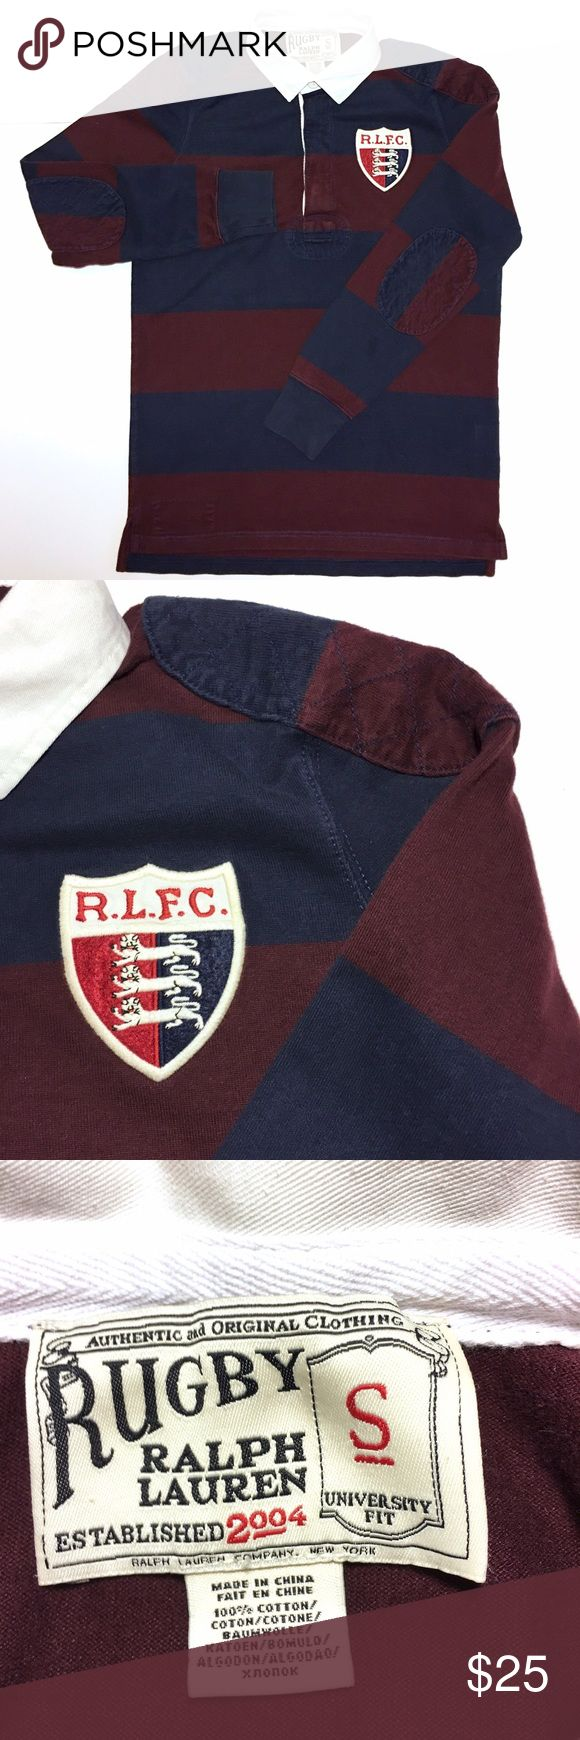 Ralph Lauren Rugby Men Long Sleeve Polo S Navy Red University Fit | Authentic and original | 100% Cotton | Navy, Maroon striped | Patched Elbows and Shoulders | fitted wrist cuffs | R.L.F.C. Stitched logo on chest (left) Rugby Ralph Lauren Shirts Polos